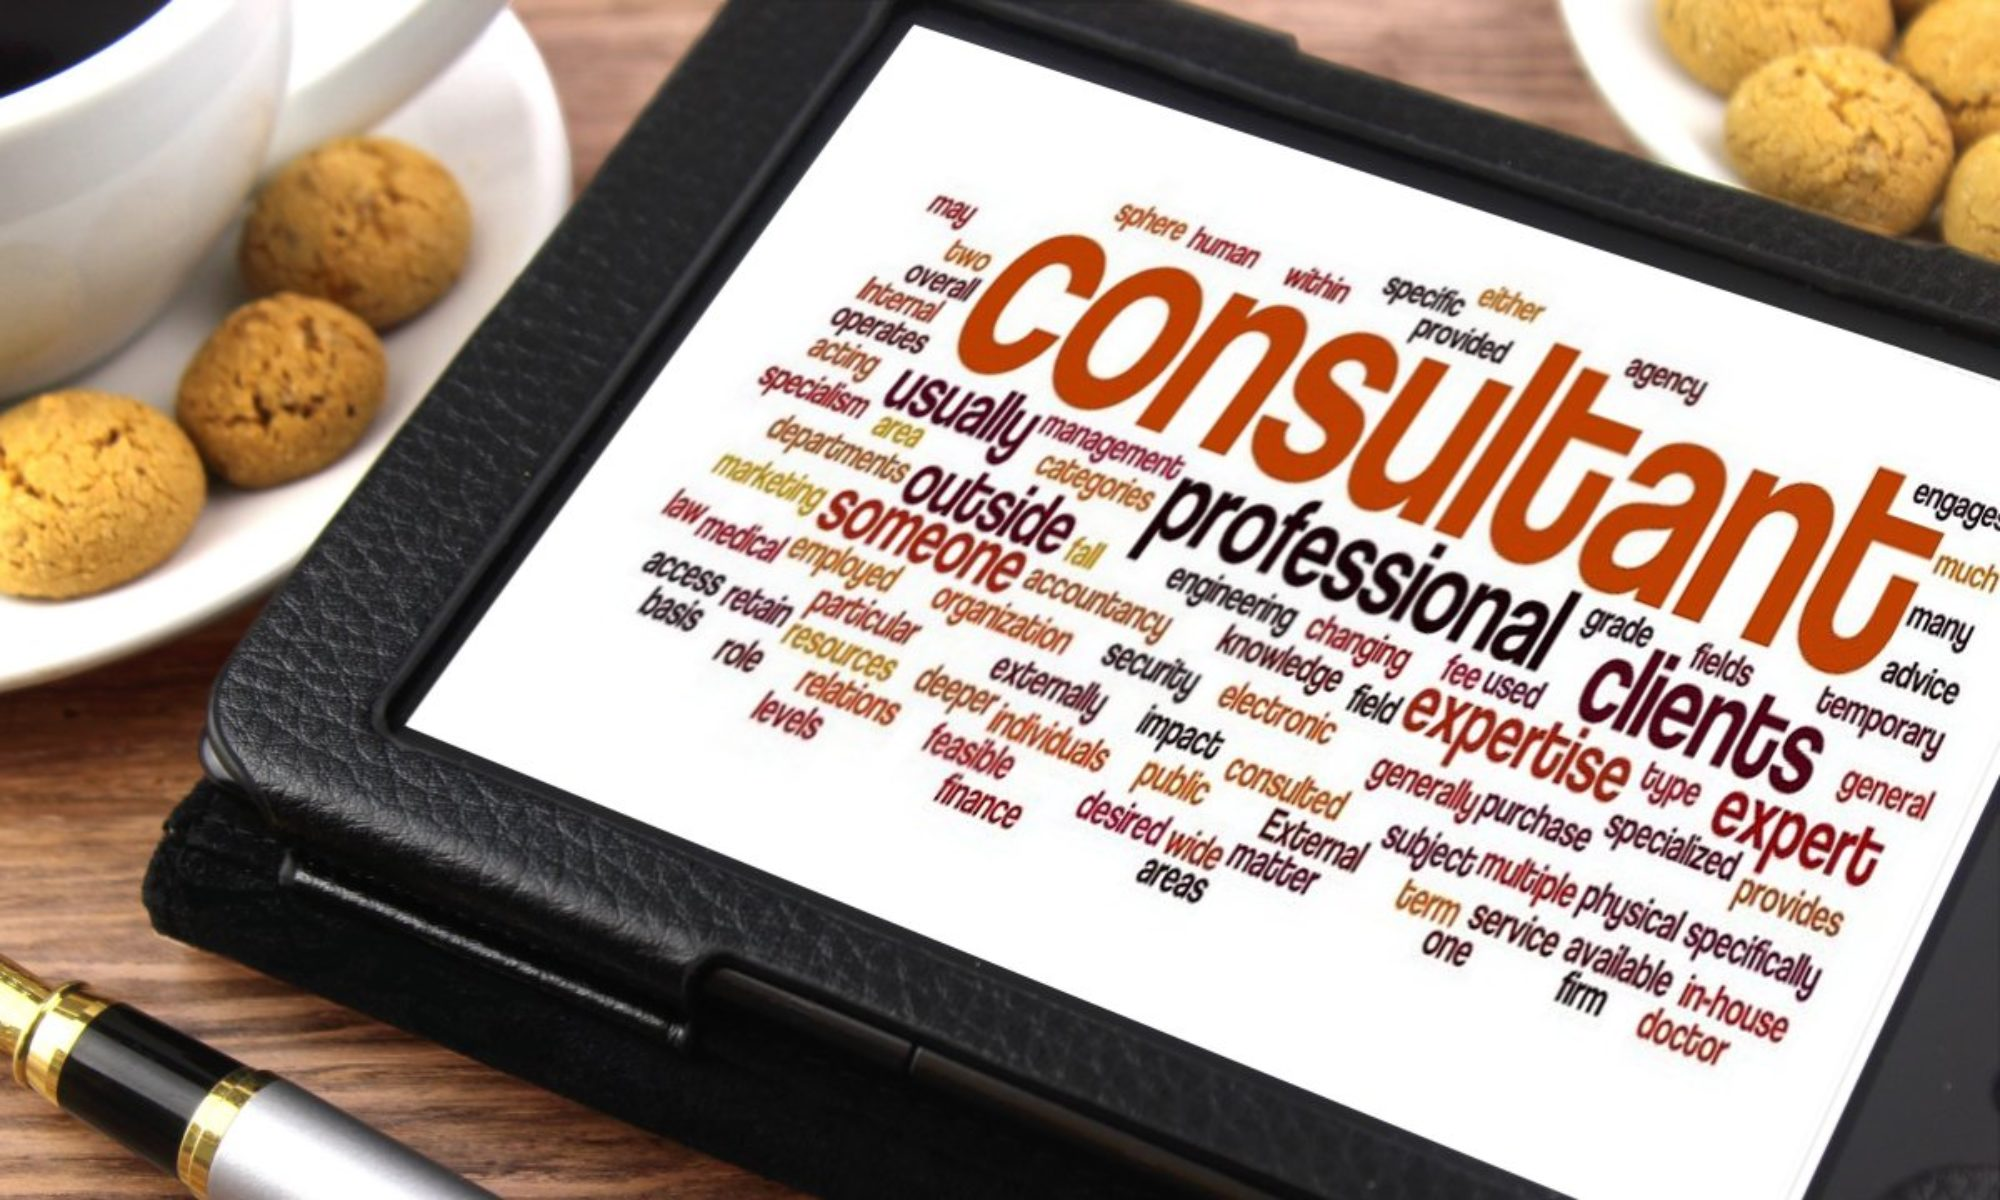 d'accord Enterprises and Consulting AG